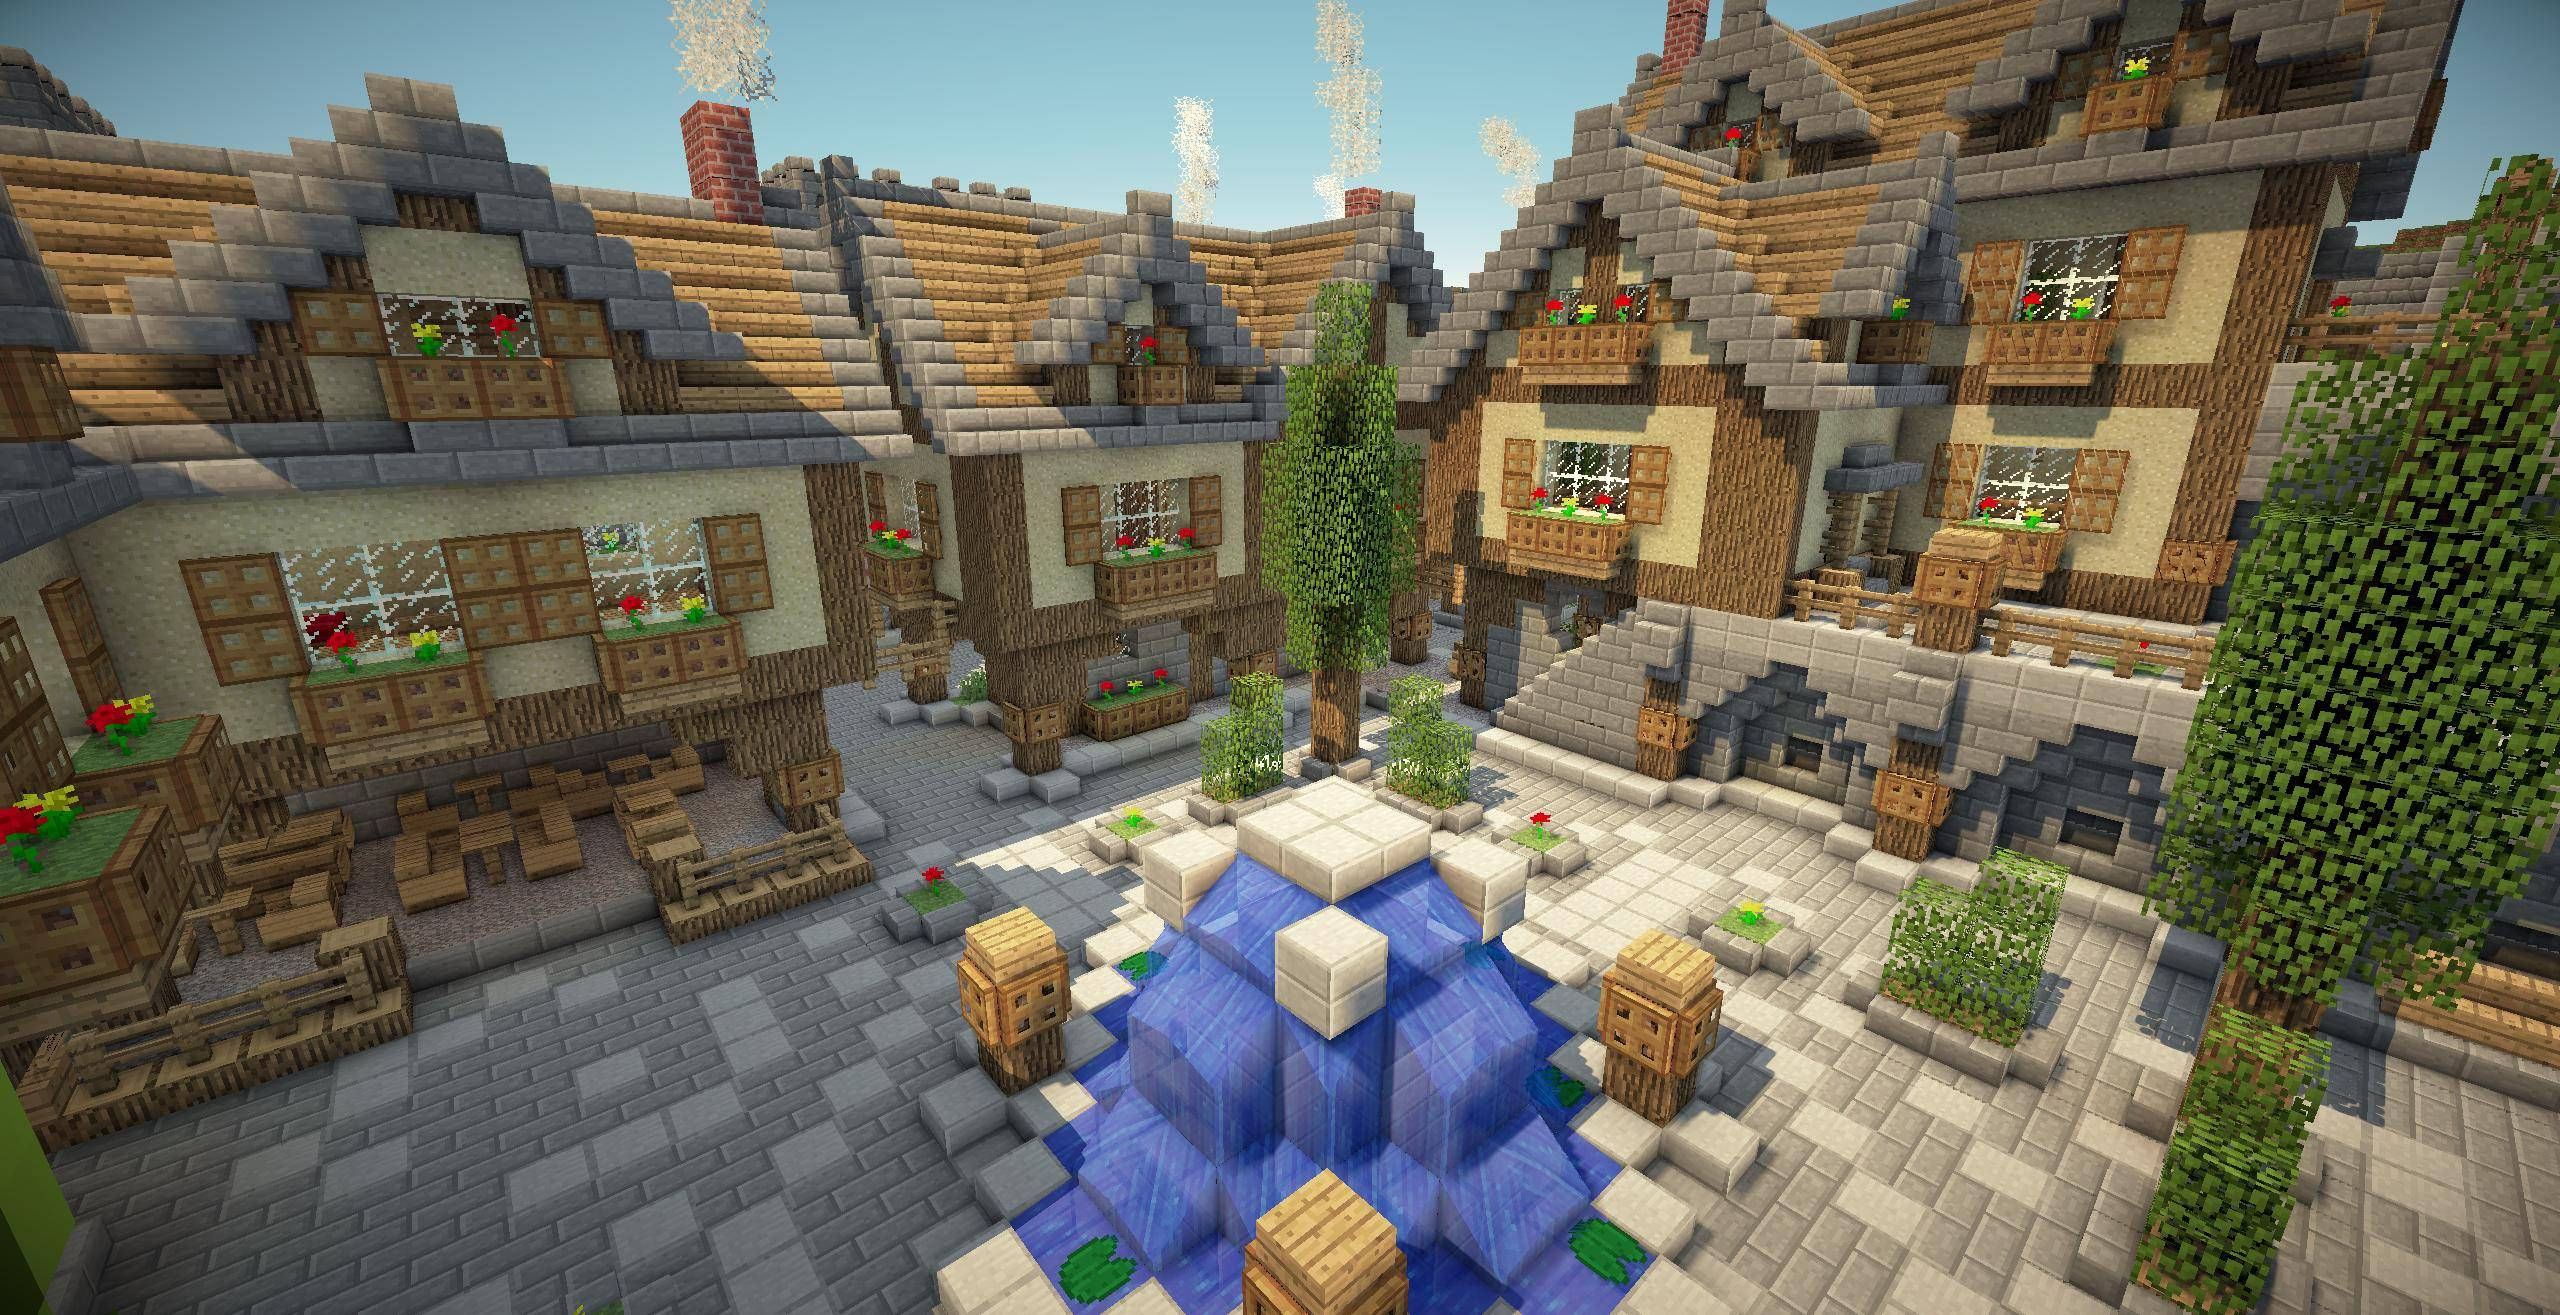 Wallpaper Village Médiéval - The-Minecraft.fr